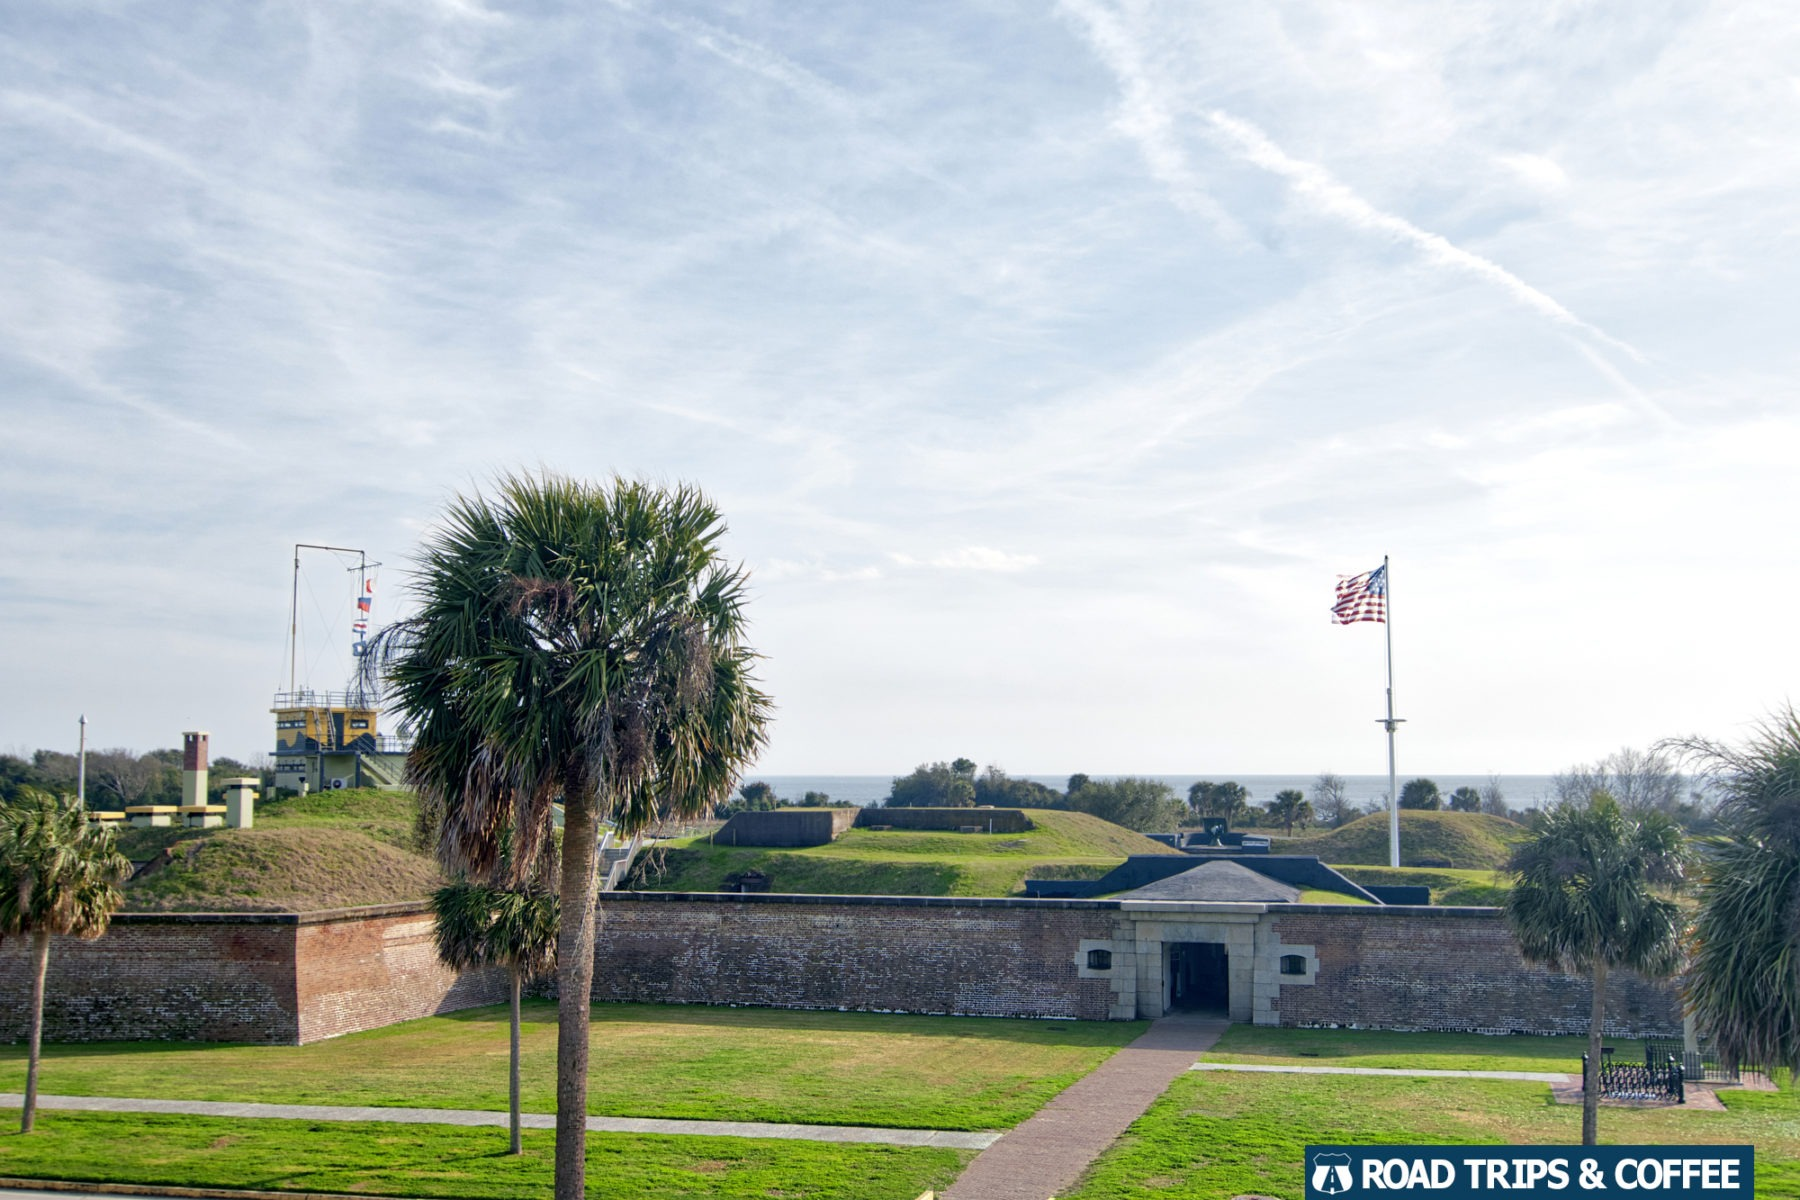 The entrance to Fort Moultrie at Fort Sumter & Fort Moultrie National Historical Park in Sullivan's Island, South Carolina